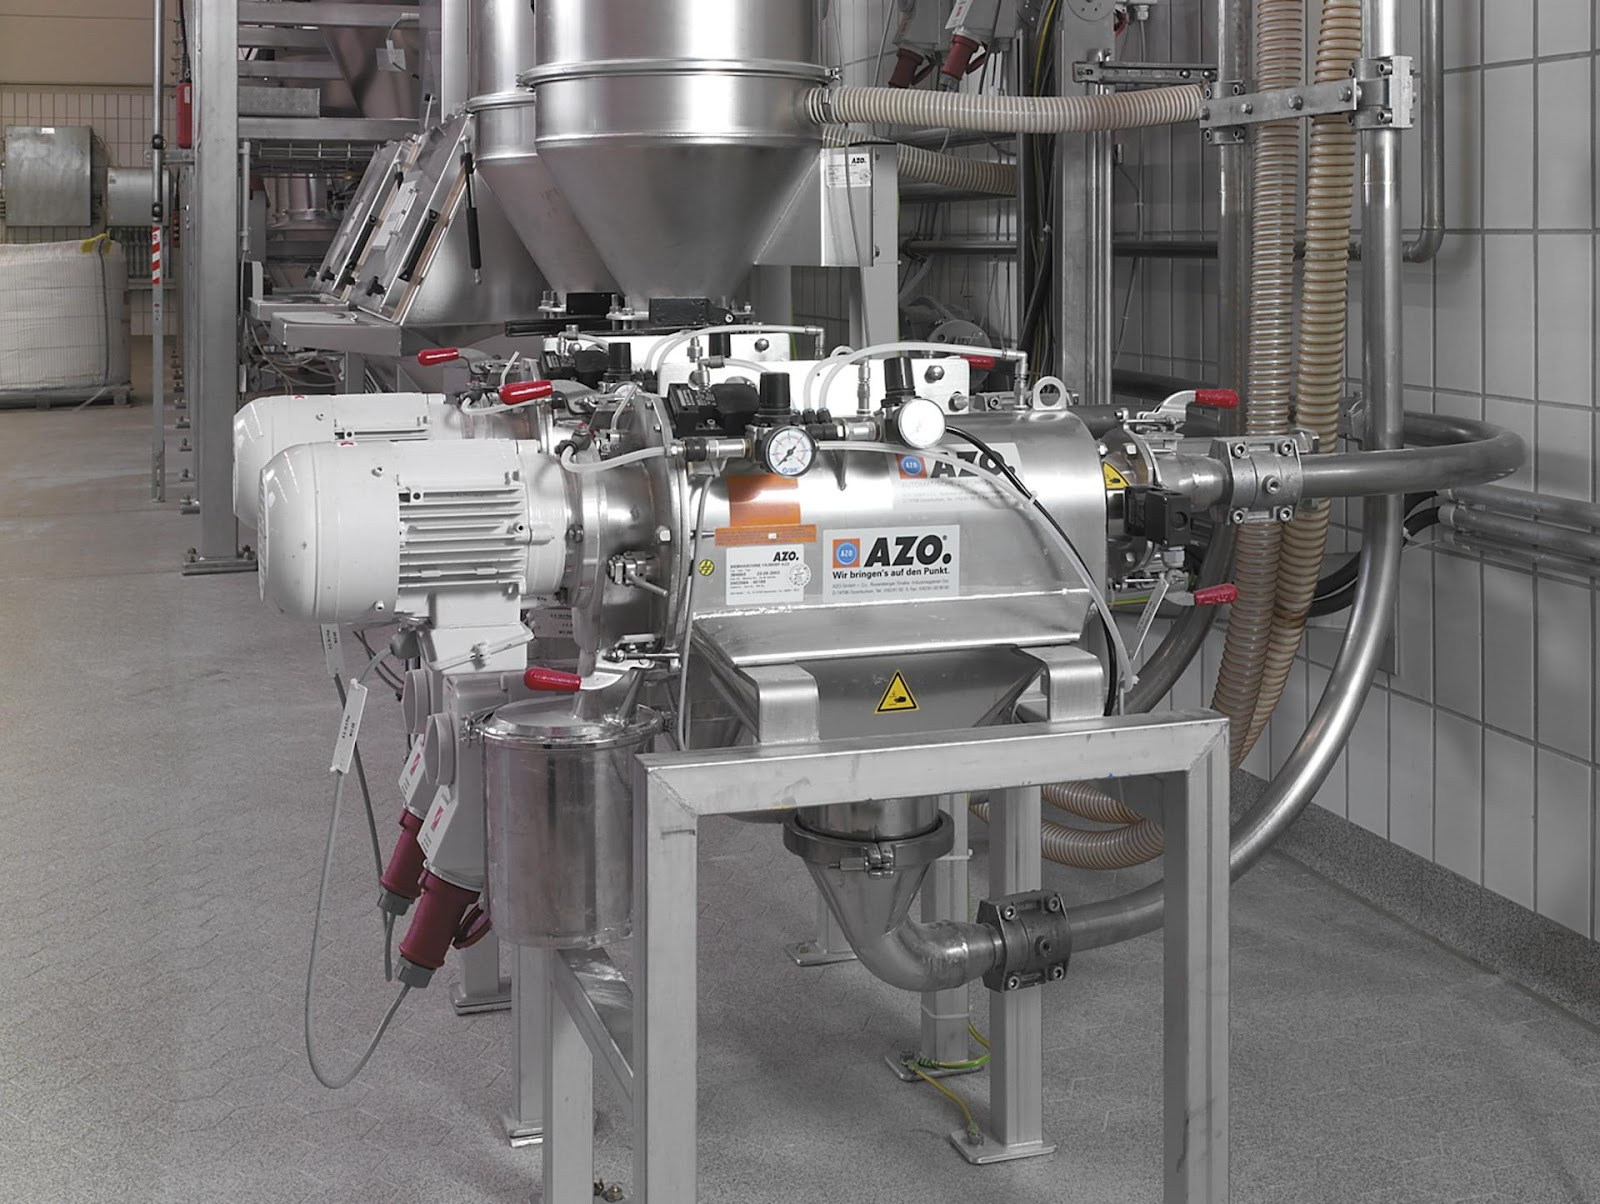 azo pneumatic conveying screener in a flour production facility